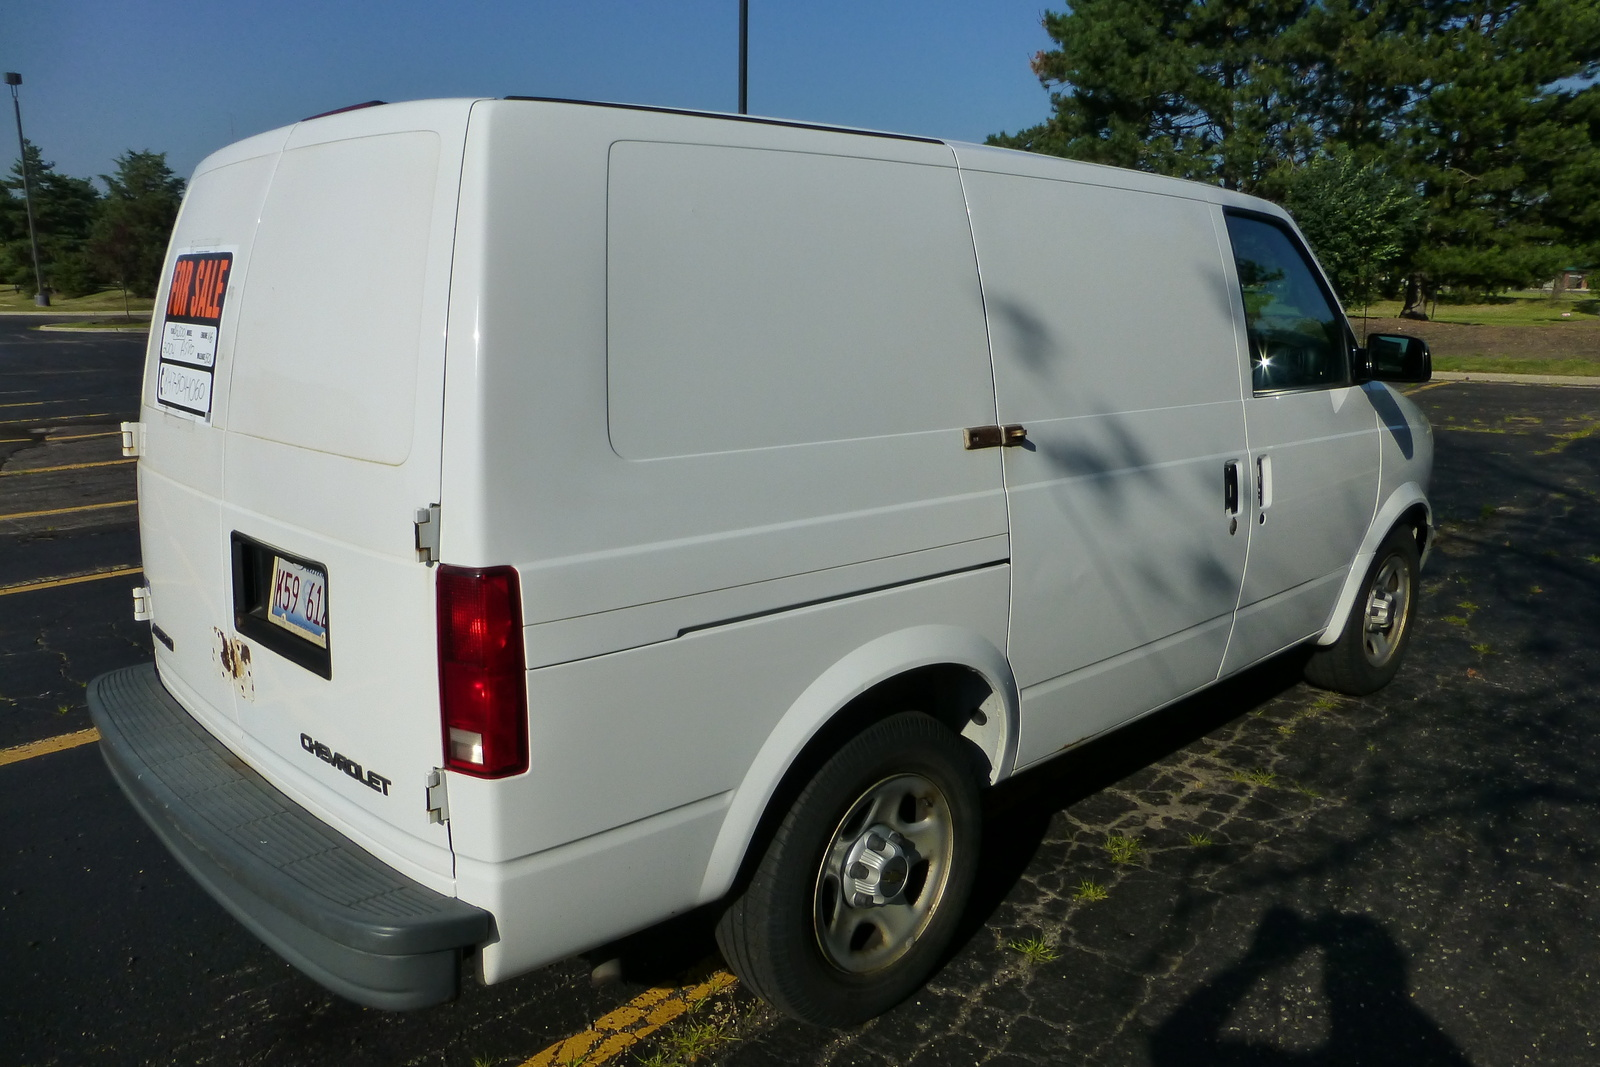 Picture of 2004 chevrolet astro cargo van exterior gallery_worthy